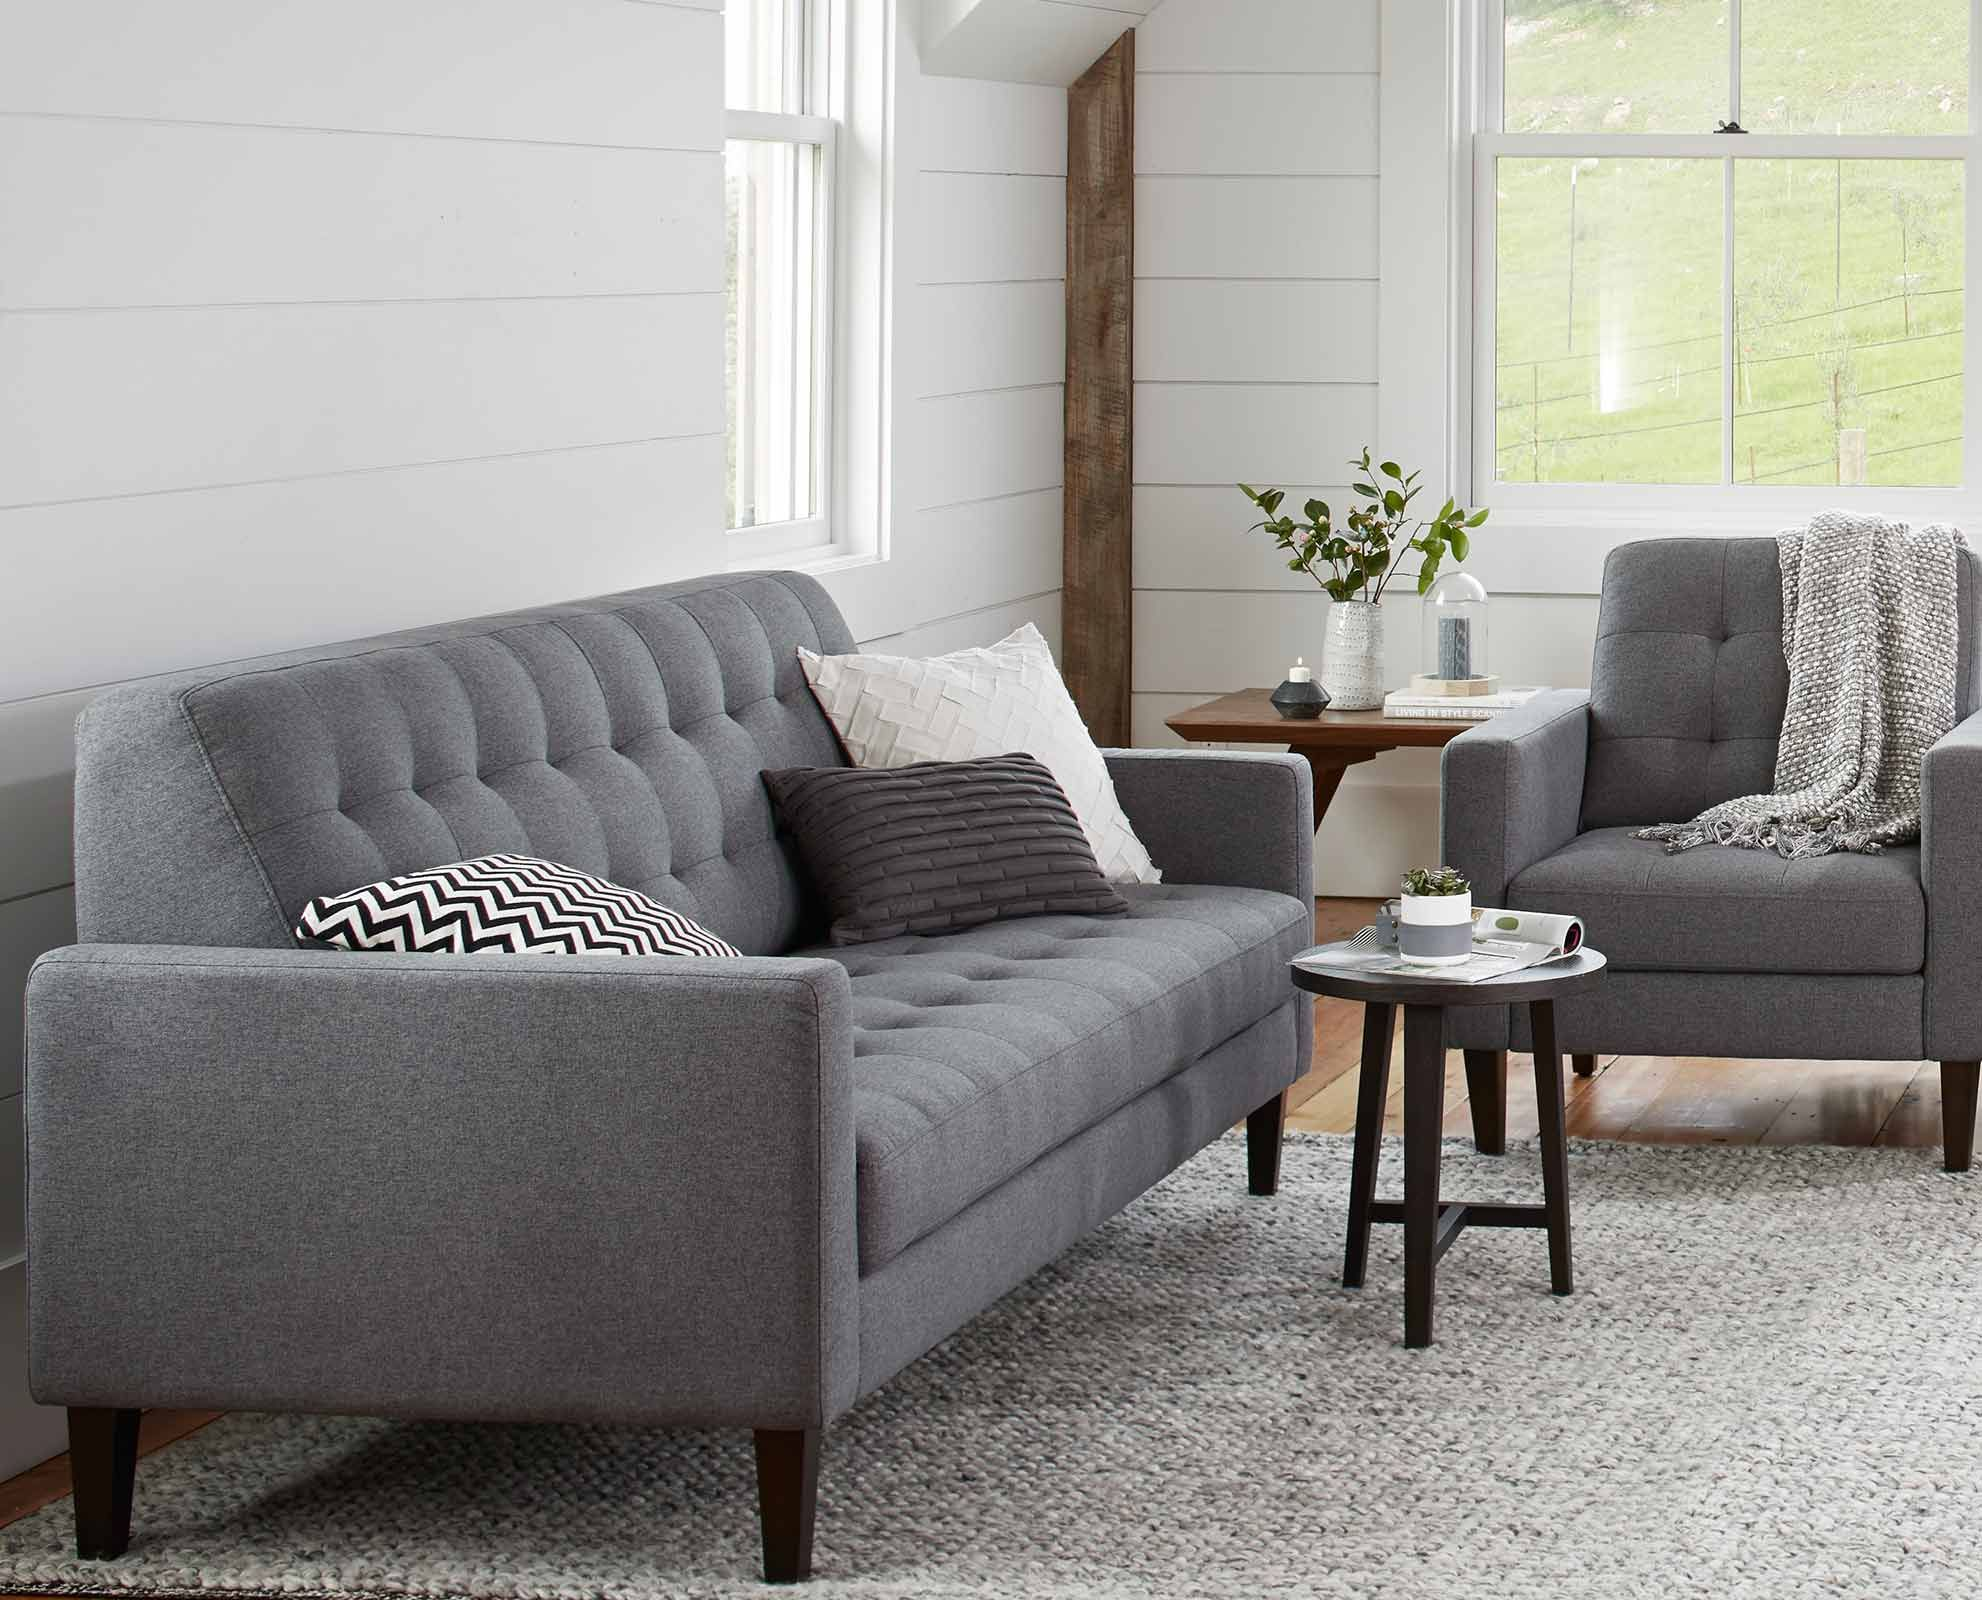 The Camilla Sofa And Accent Chair From Dania Furniture Co.   Enjoy The  Refined Comfort Of The Camilla Sofa, With A Perfectly Angled Backrest And  Long ...